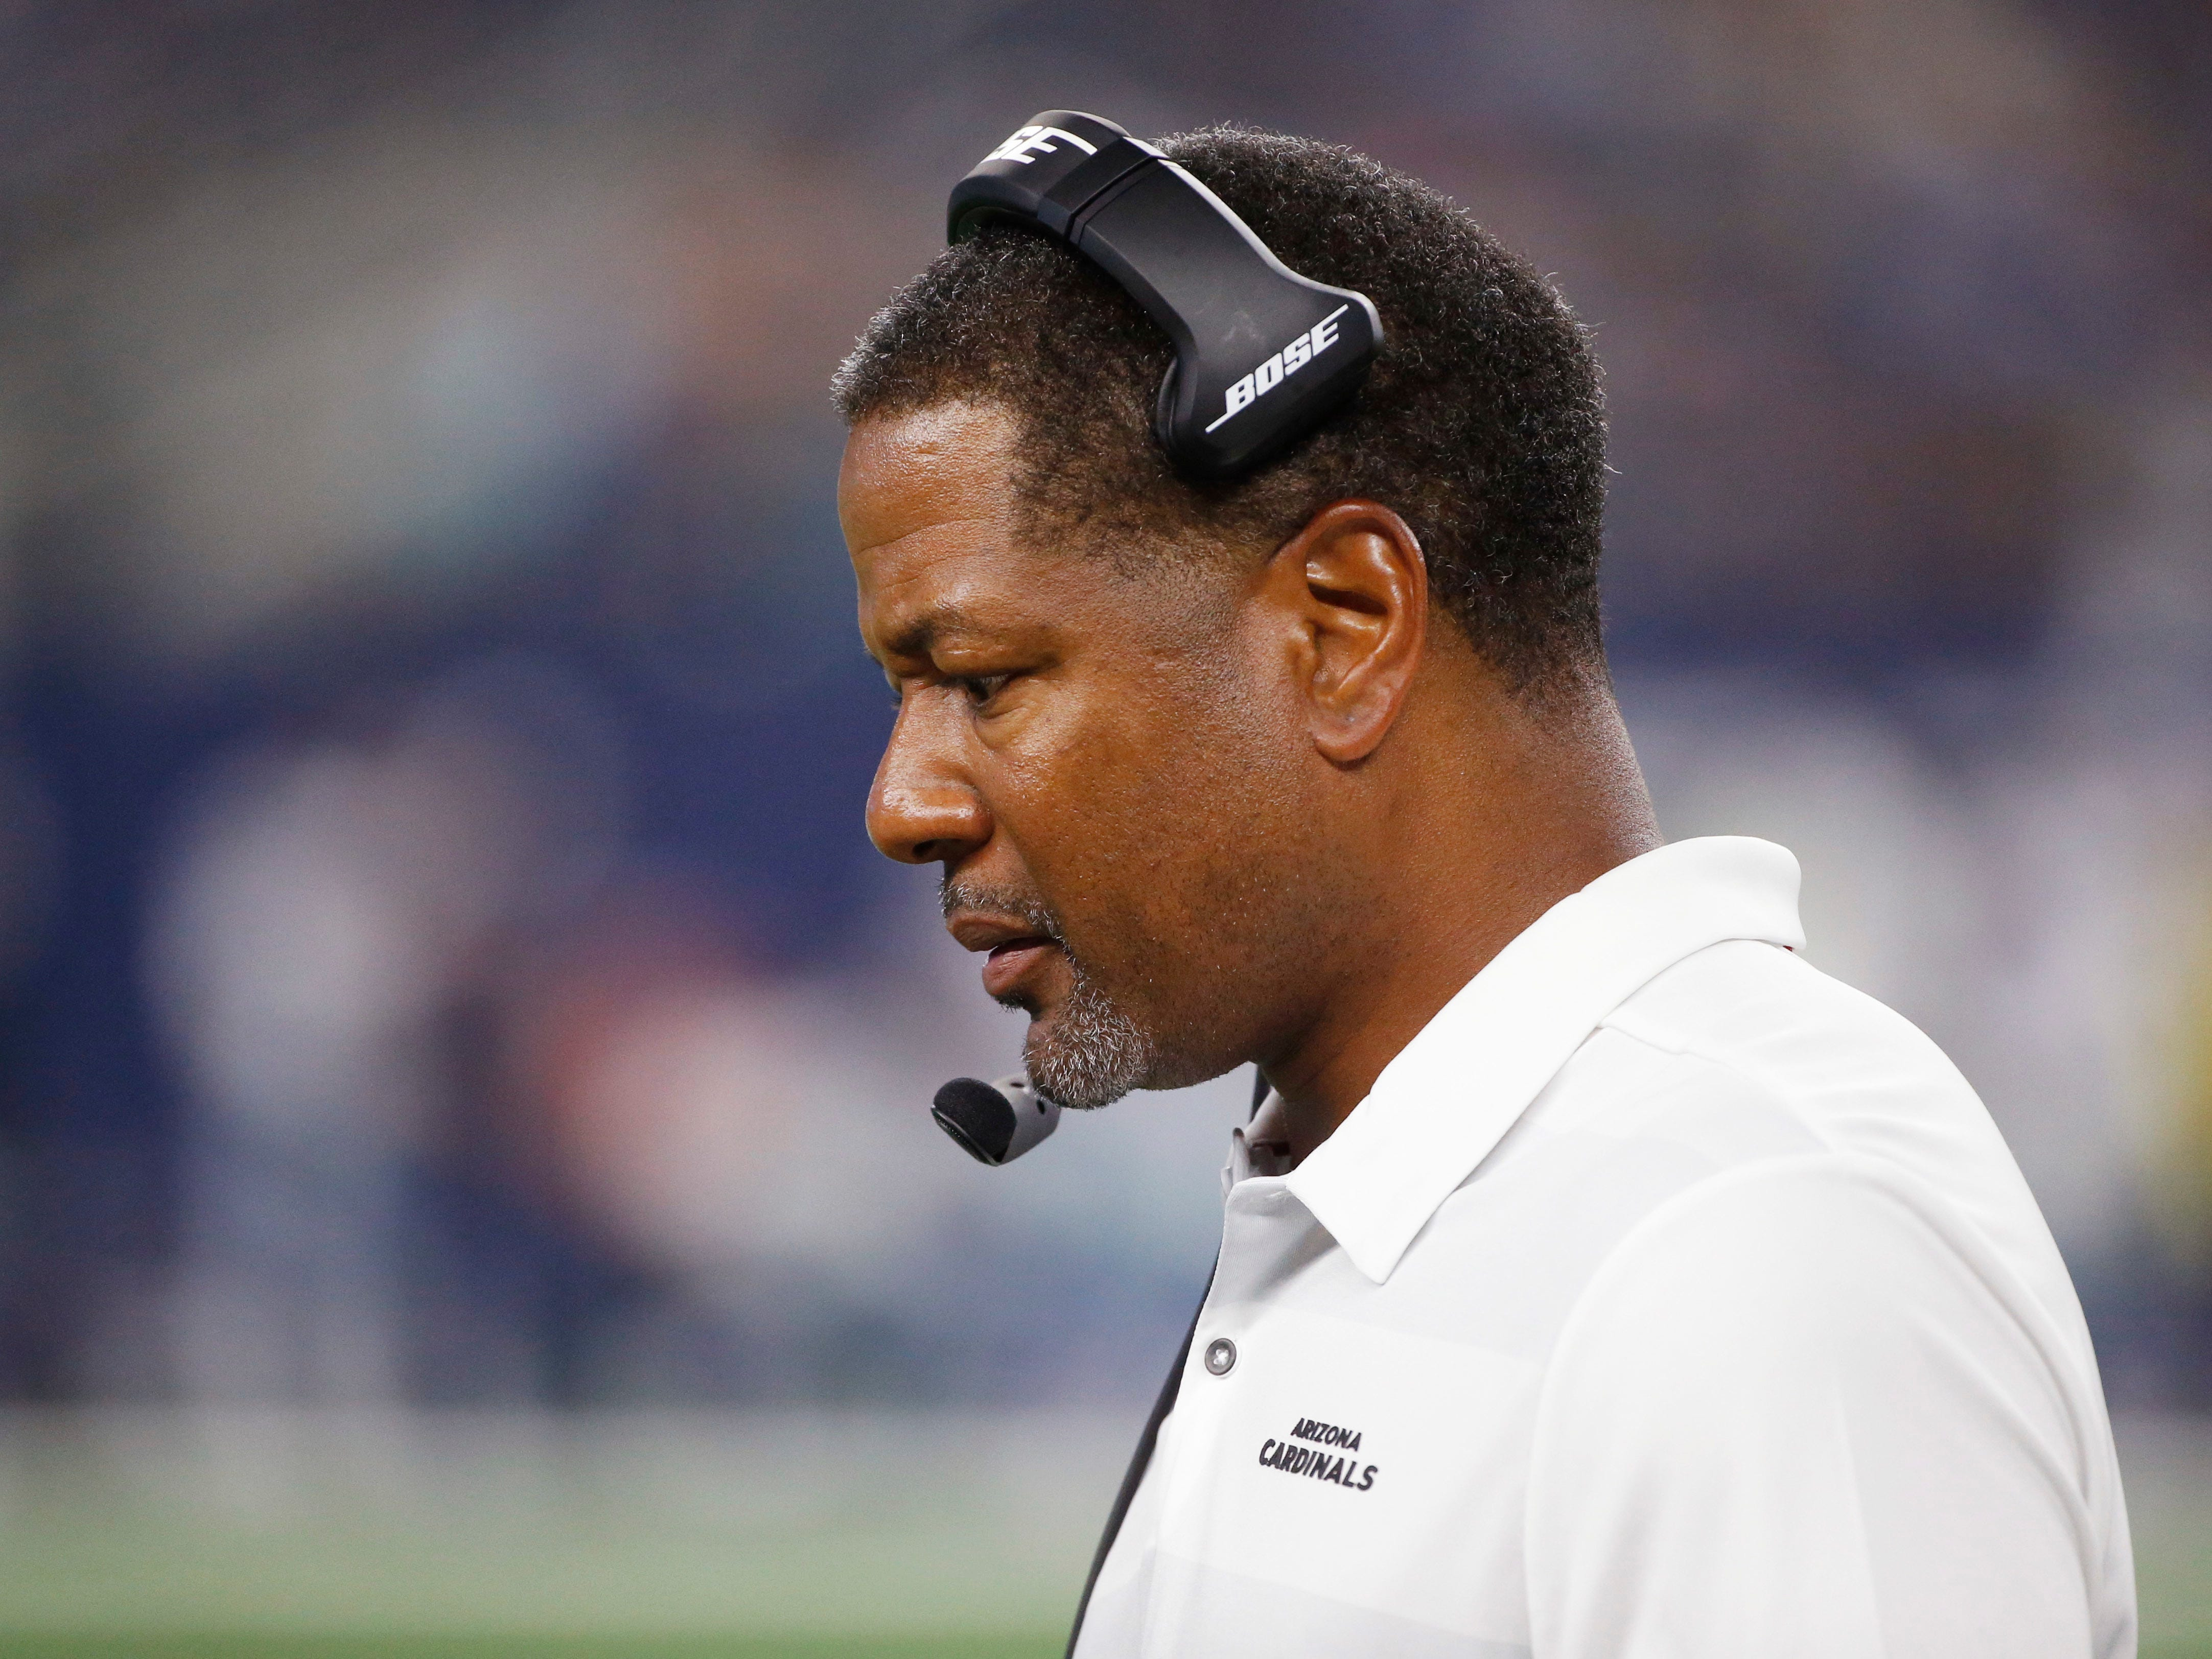 Arizona Cardinals head coach Steve Wilks looks on during the first half of a preseason NFL football game against the Dallas Cowboys in Arlington, Texas, Sunday, Aug. 26, 2018. (AP Photo/Michael Ainsworth)